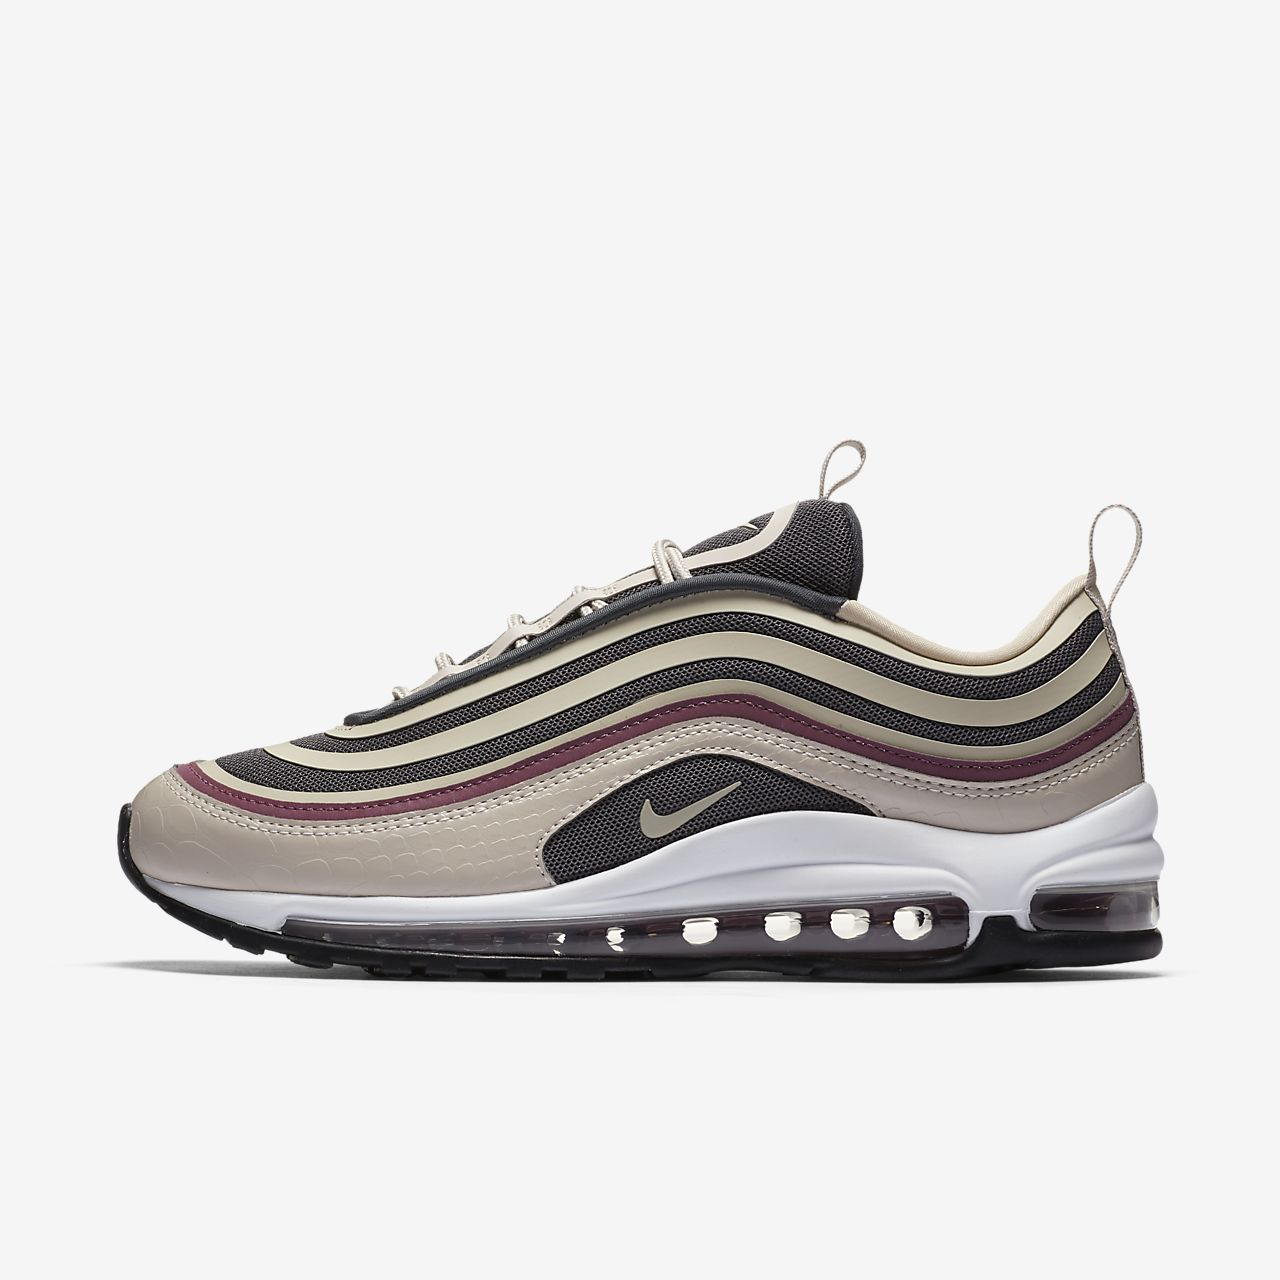 Chaussure Nike Air Max 97 Ultra '17 SE pour Femme – Boutique Nike ...